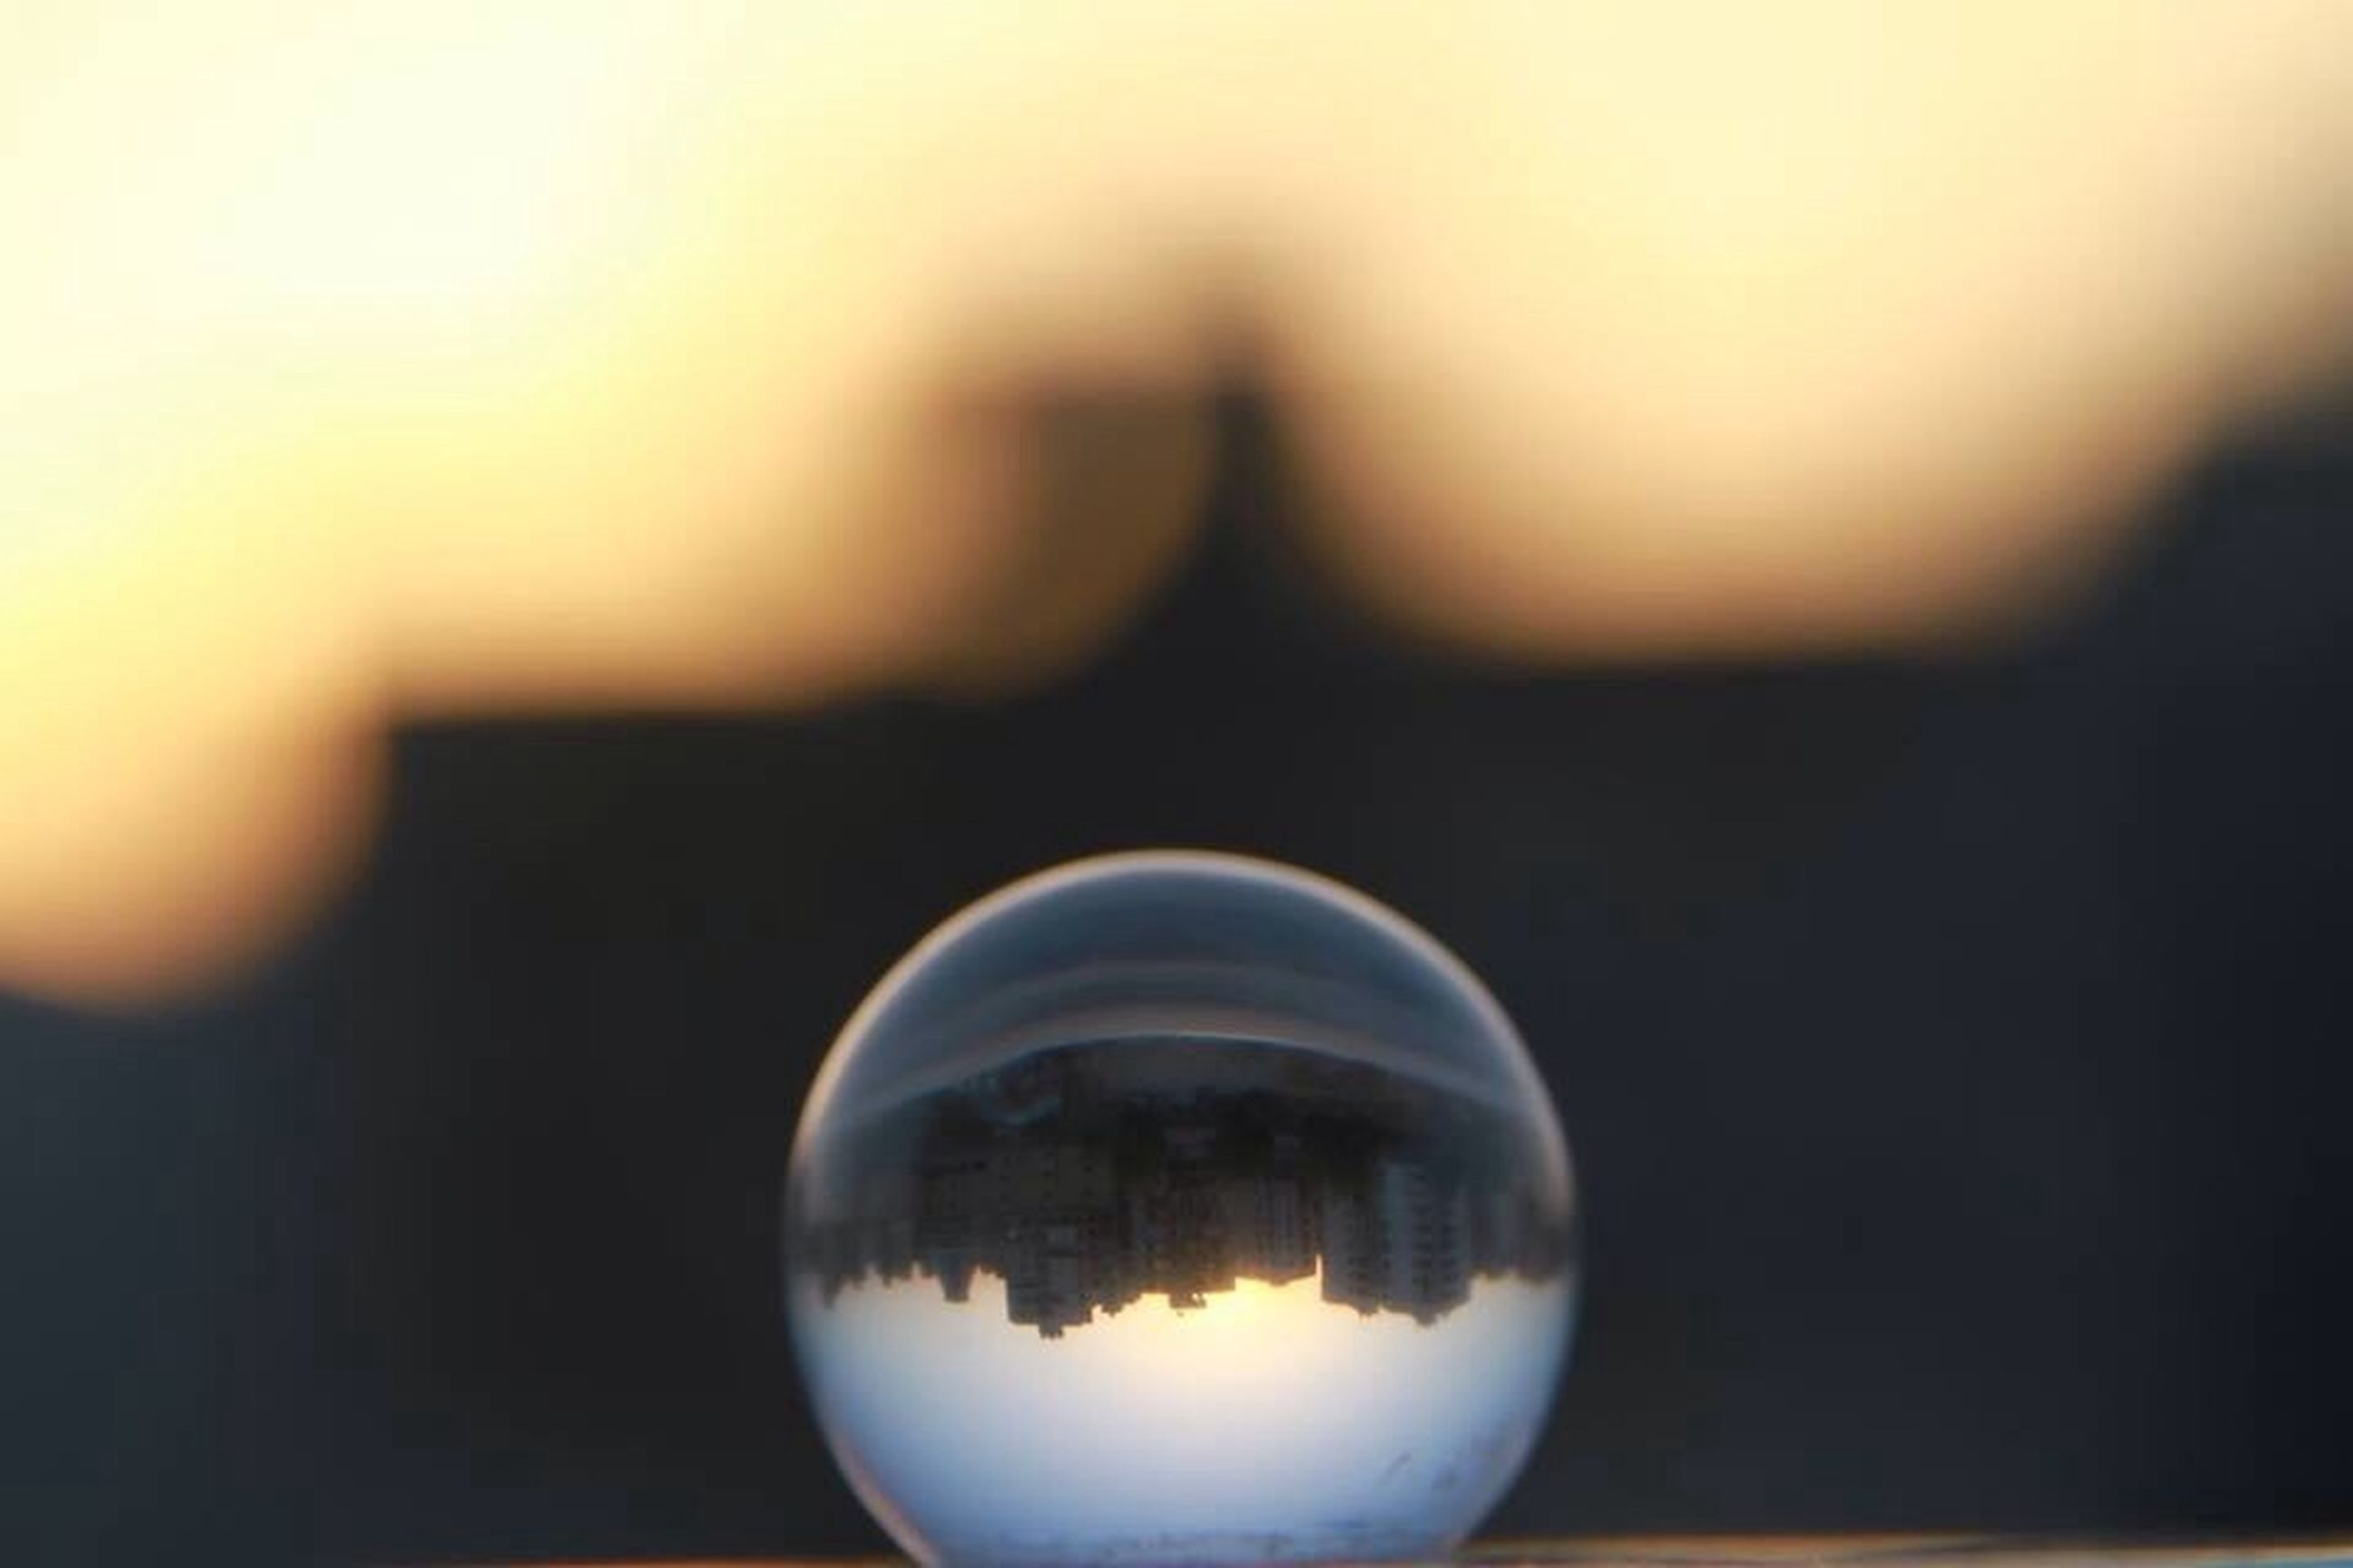 reflection, sunset, focus on foreground, sky, close-up, silhouette, circle, copy space, water, dusk, sphere, glass - material, transparent, nature, illuminated, outdoors, no people, selective focus, clear sky